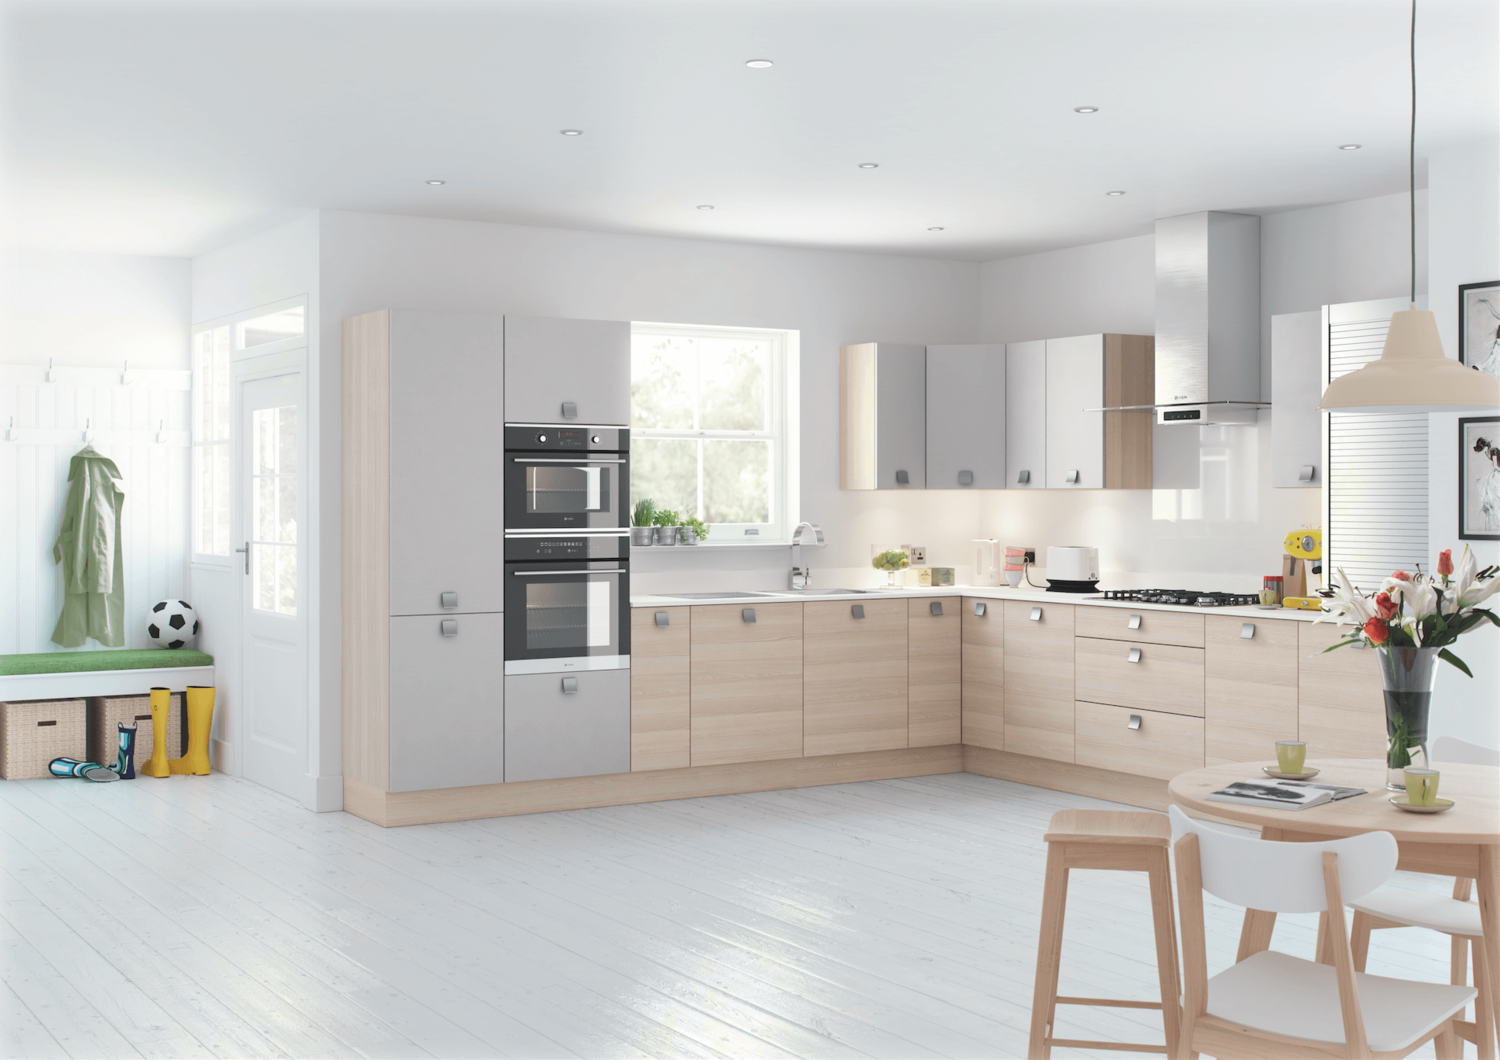 Bespoke Fitted Kitchens in Hampshire | Deane Interiors